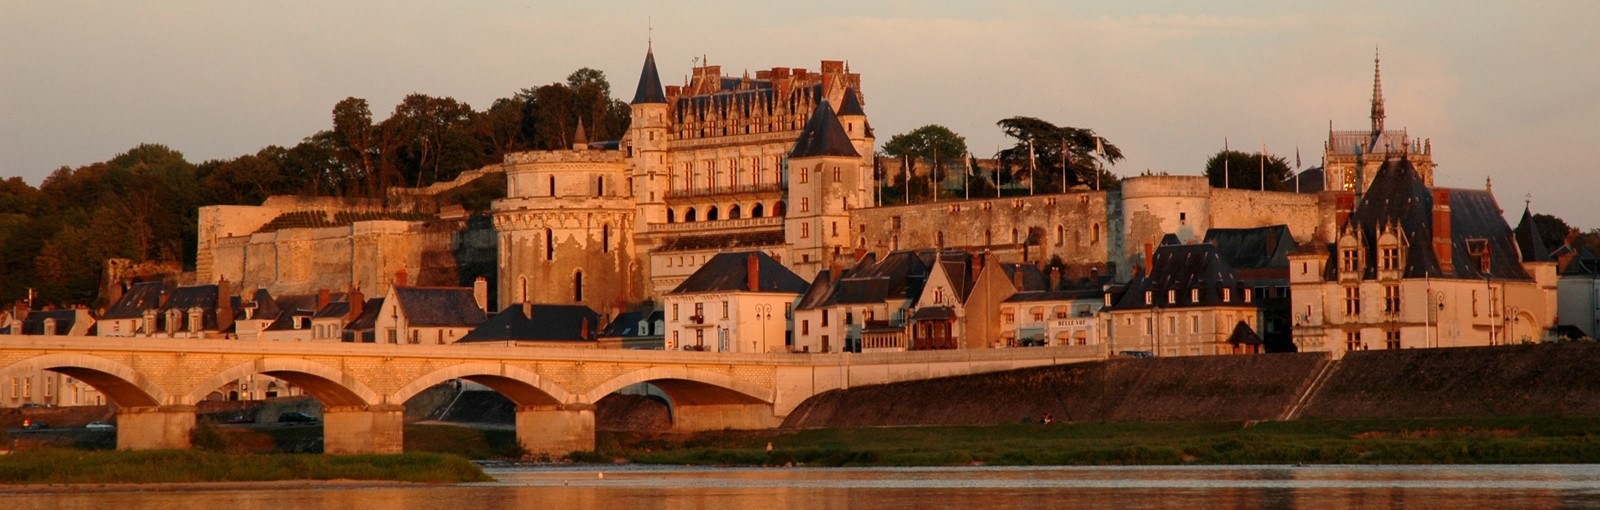 Tours LEONARDO DA VINCI AND WINES FROM AMBOISE - Full days - Day tours from Paris